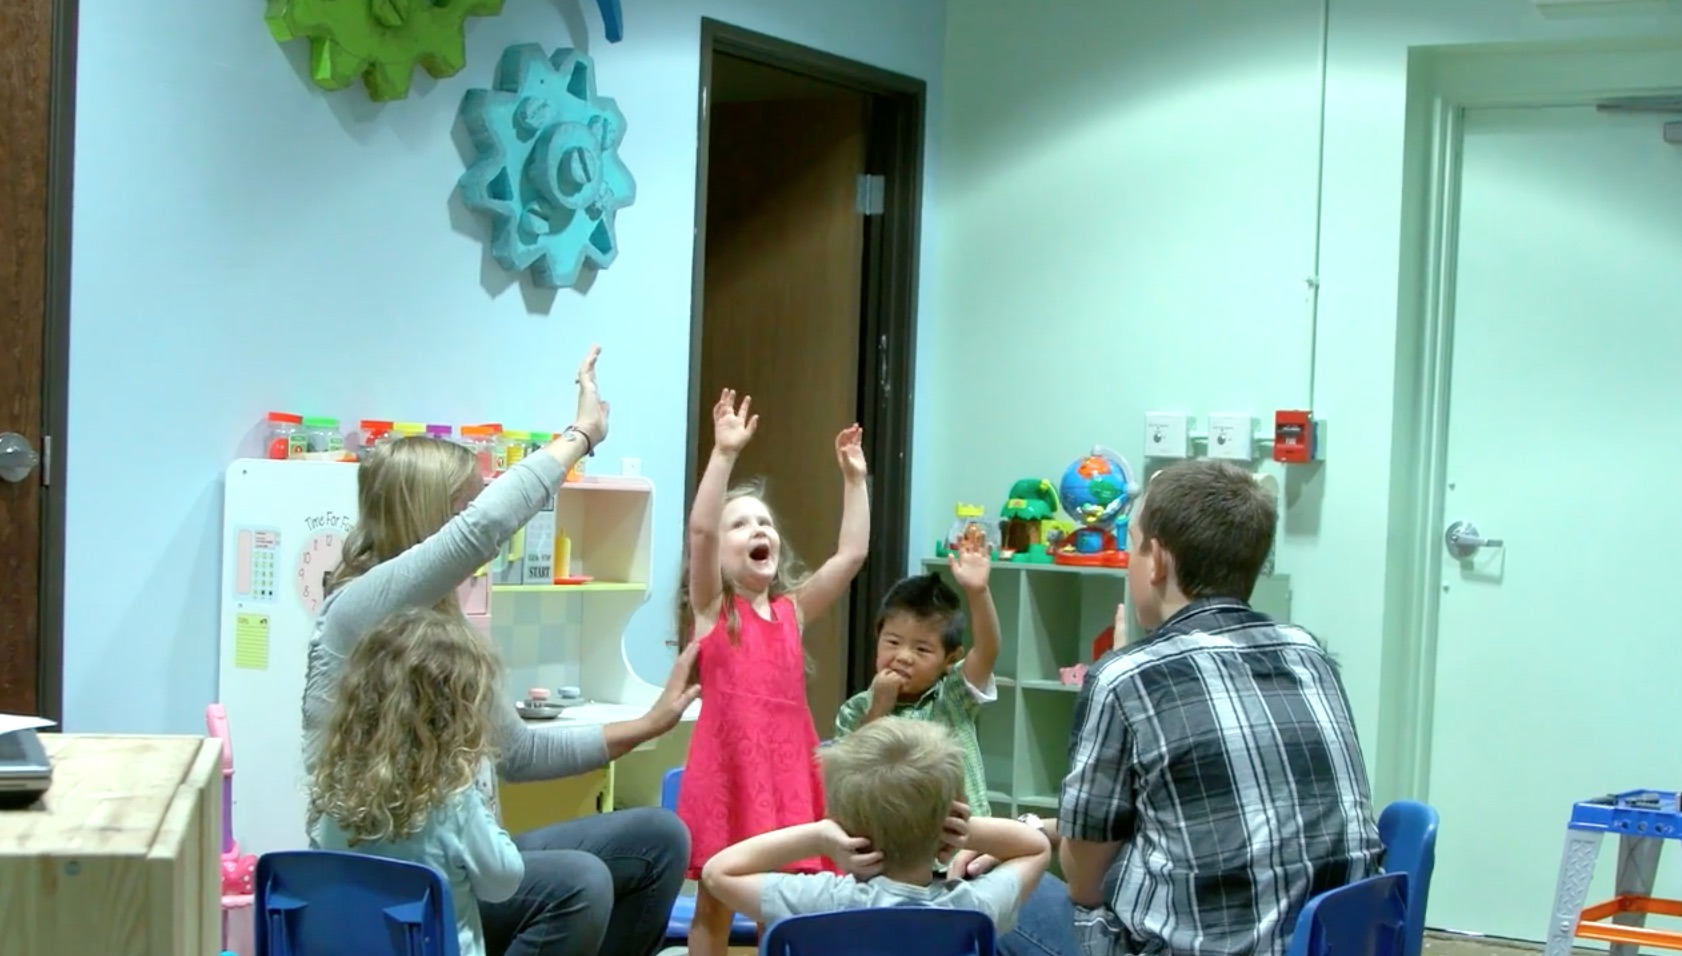 Preschool - Interactive activities, crafts, games and large group Bible Stories delight our preschools and fill their hearts with wonder about our BIG GOD. Our preschoolers also love our giant, indoor play area with climbing wall and slide!